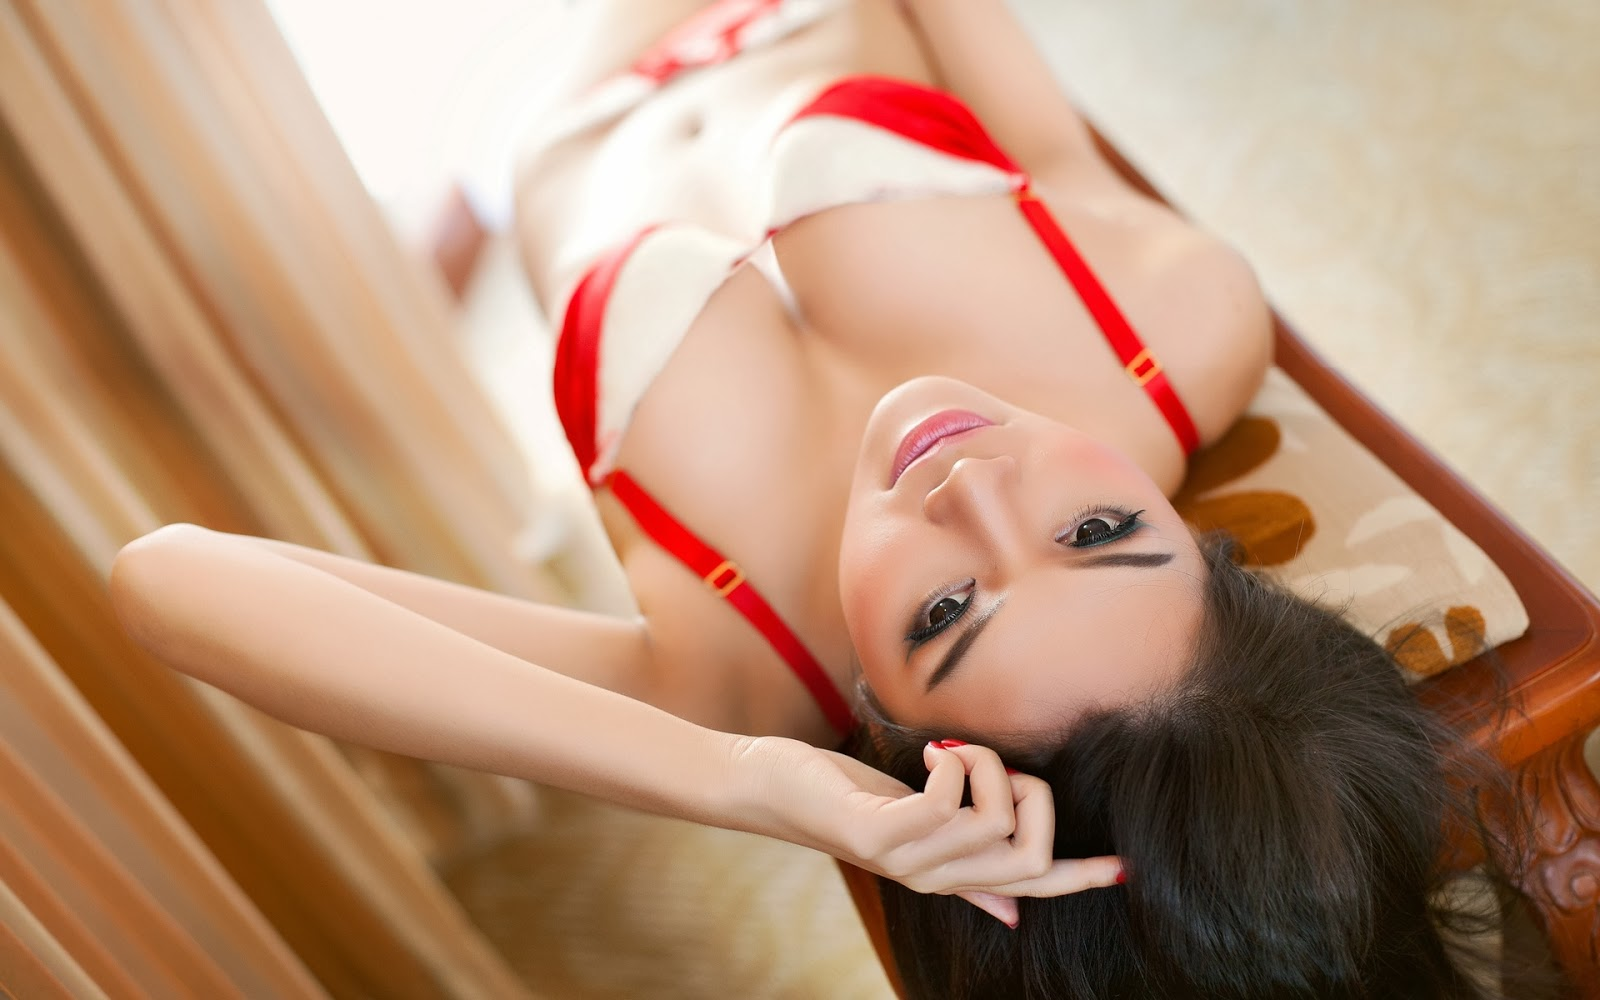 Asian Beauty Woman Sexy Lingerie